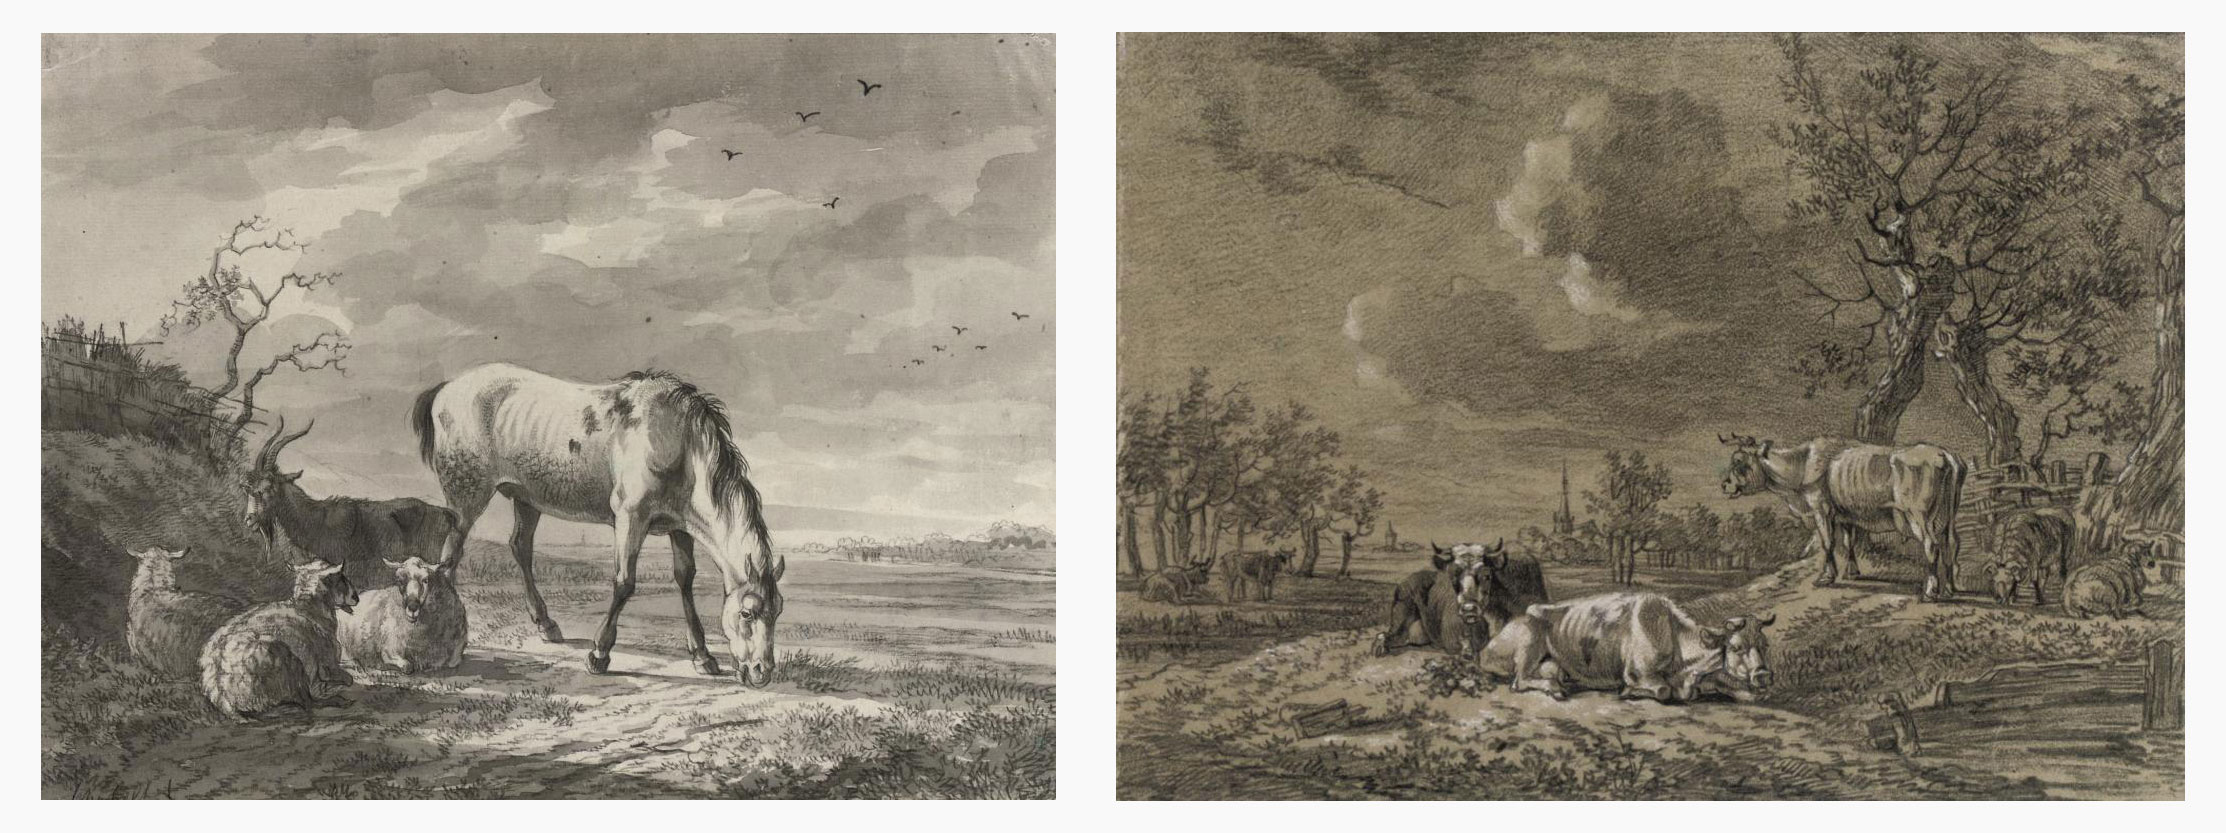 A horse and sheep in a meadow; and Cows and sheep resting in a landscape